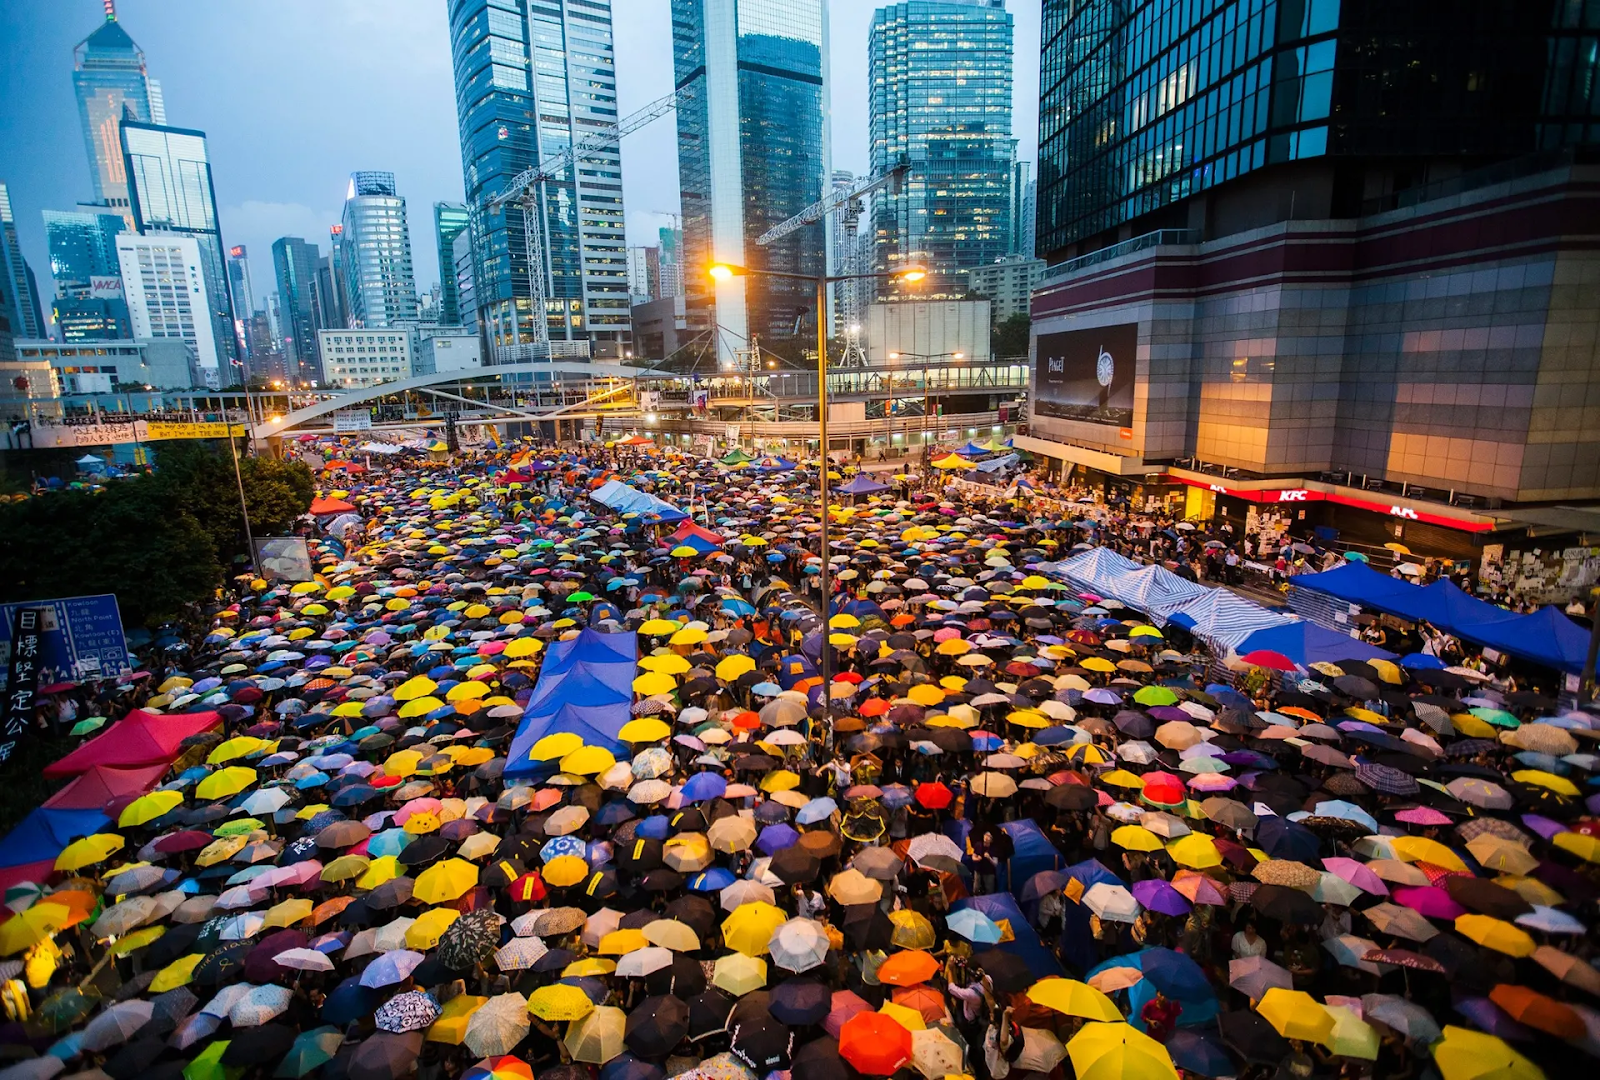 On Oct. 28, 2014, protestors opened their umbrellas for 87 seconds, marking the 87 rounds of tear gas fired by Hong Kong police on unarmed student demonstrators in the Admiralty area. Photo:  Alex Hofford/EPA